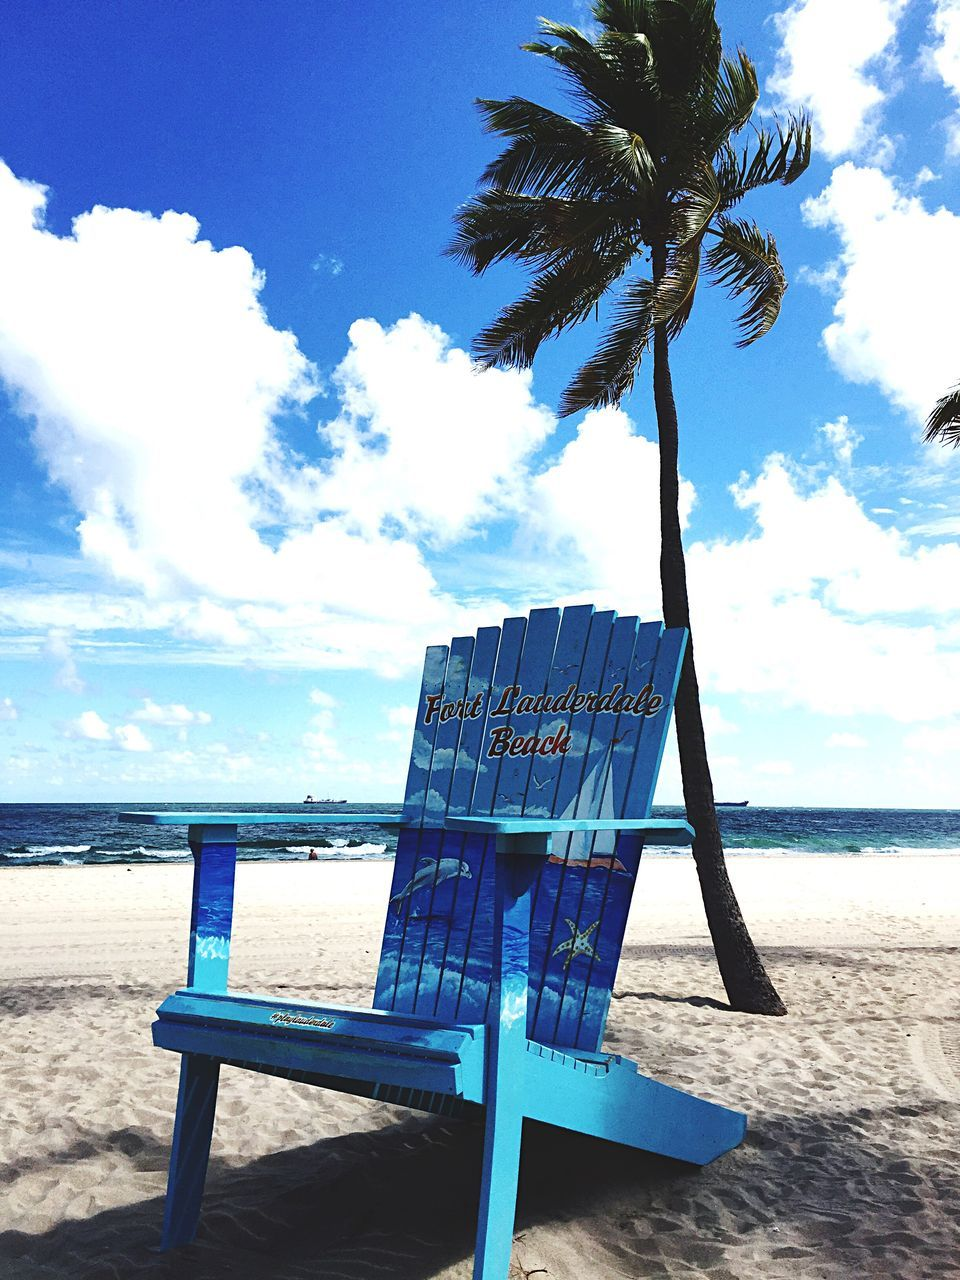 beach, sea, sky, water, horizon over water, nature, sand, scenics, tranquility, tranquil scene, shore, chair, cloud - sky, beauty in nature, day, outdoors, relaxation, no people, vacations, blue